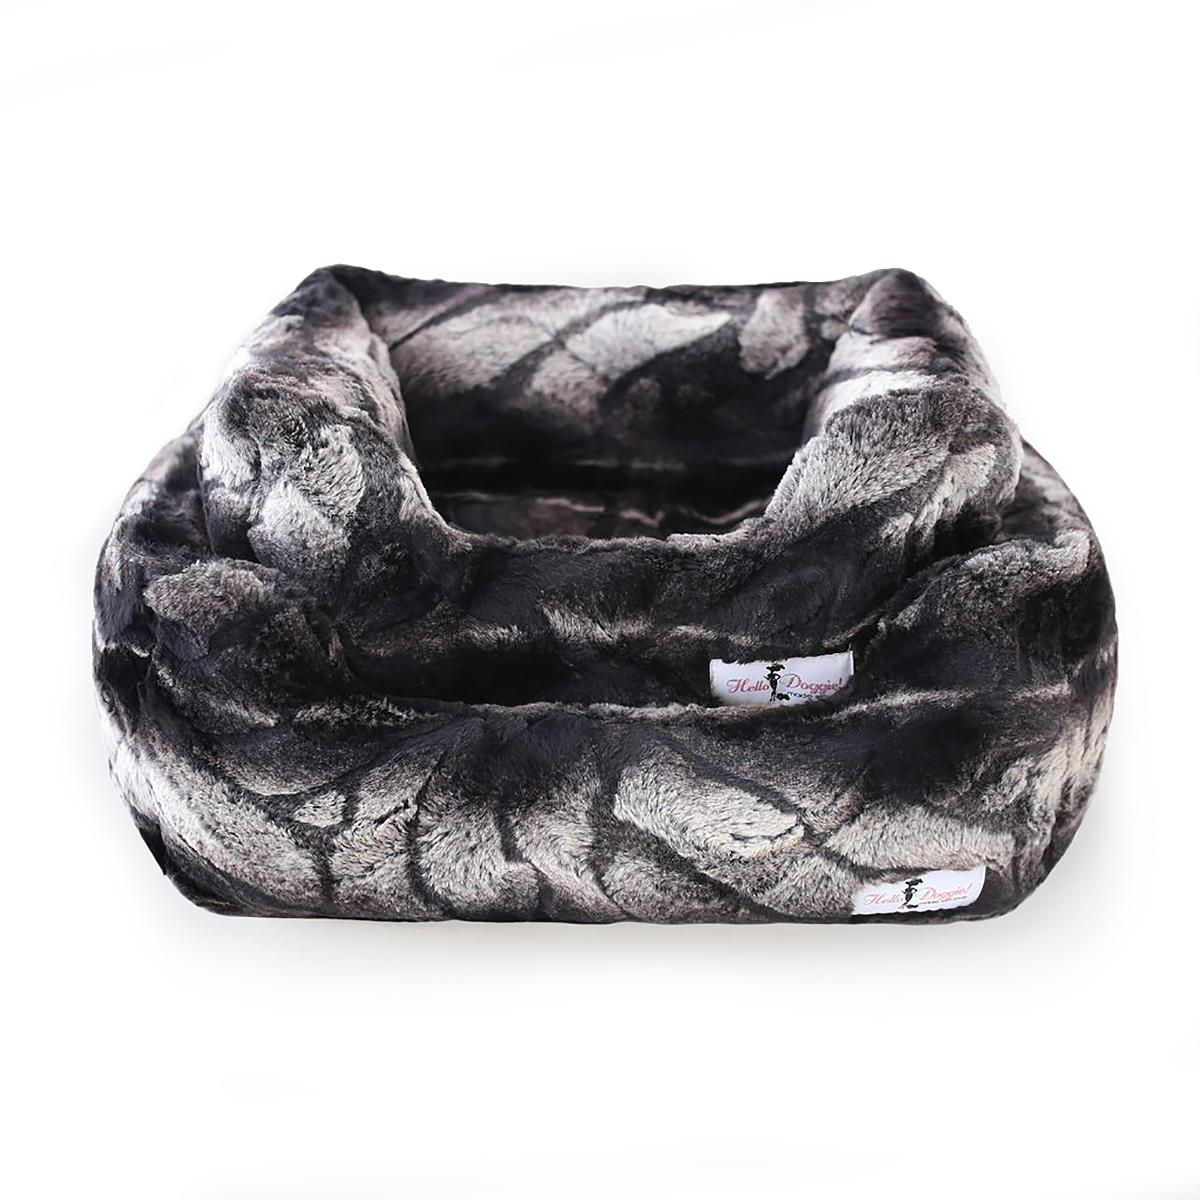 Deluxe Dog Bed by Hello Doggie - Chinchilla